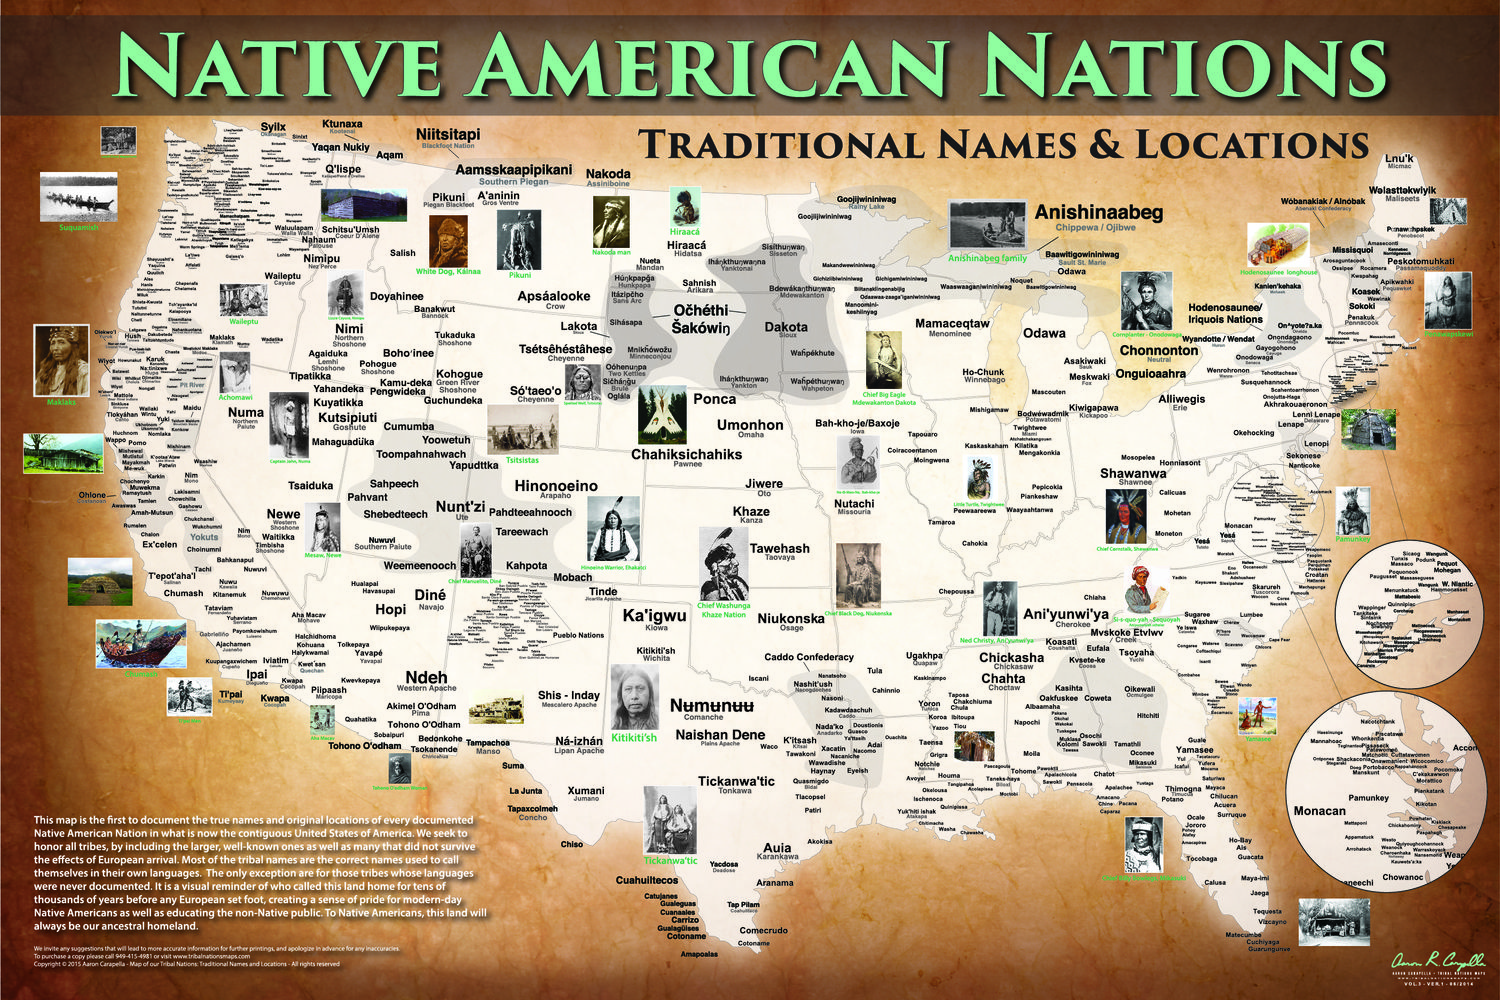 Map courtesy Aaron Carapella, Native mapmaker. Full size copies may be purchased atwww.tribalnationsmaps.com.